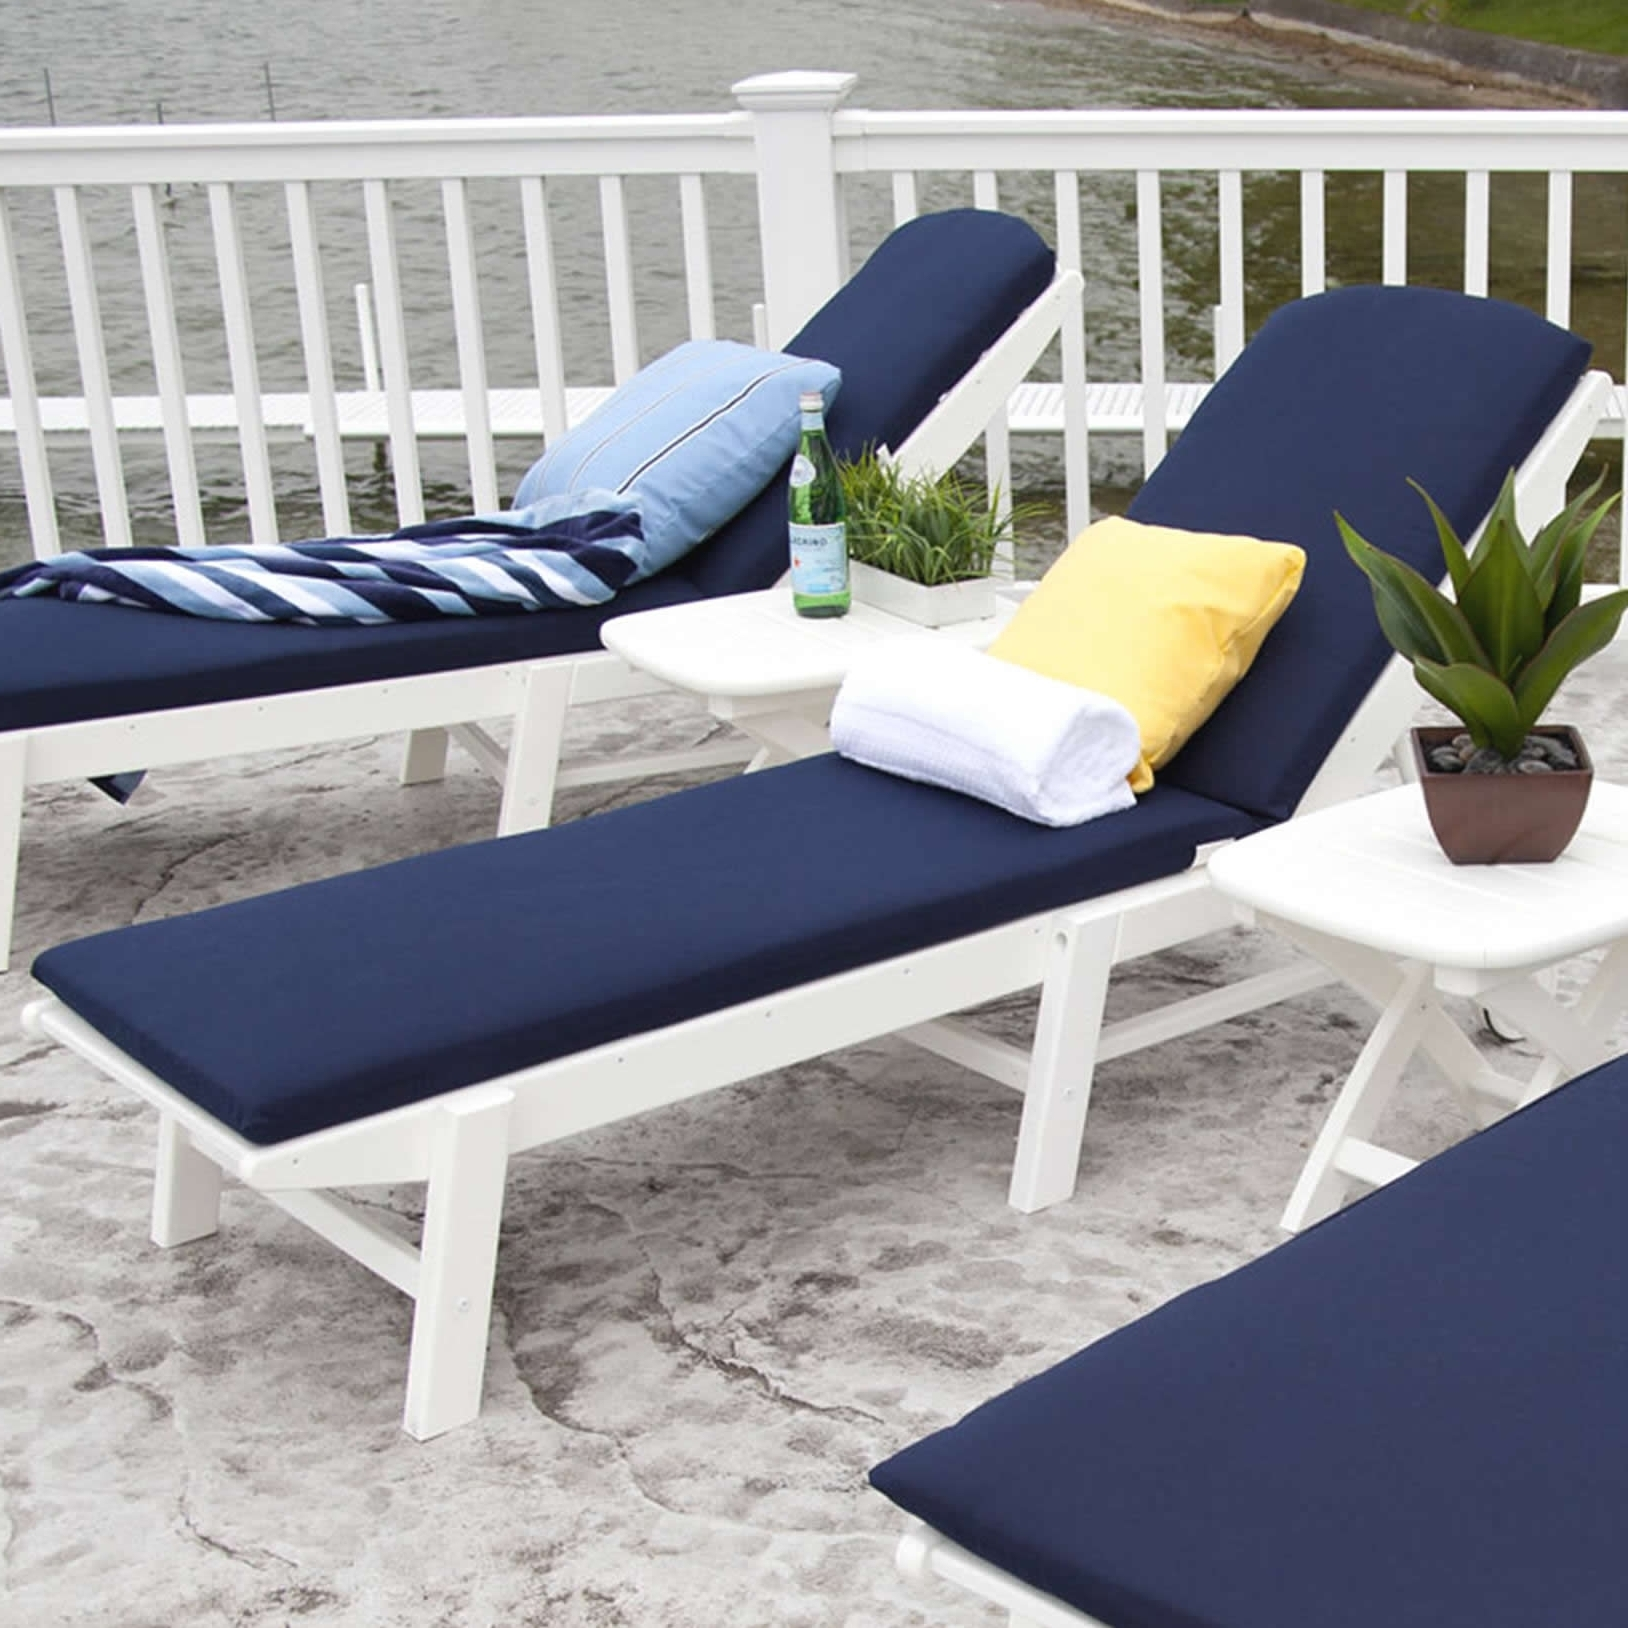 2017 Chaise Lounge Chair Outdoor Cushions Within Polywood Nautical Chaise Lounge Cushions (View 11 of 15)